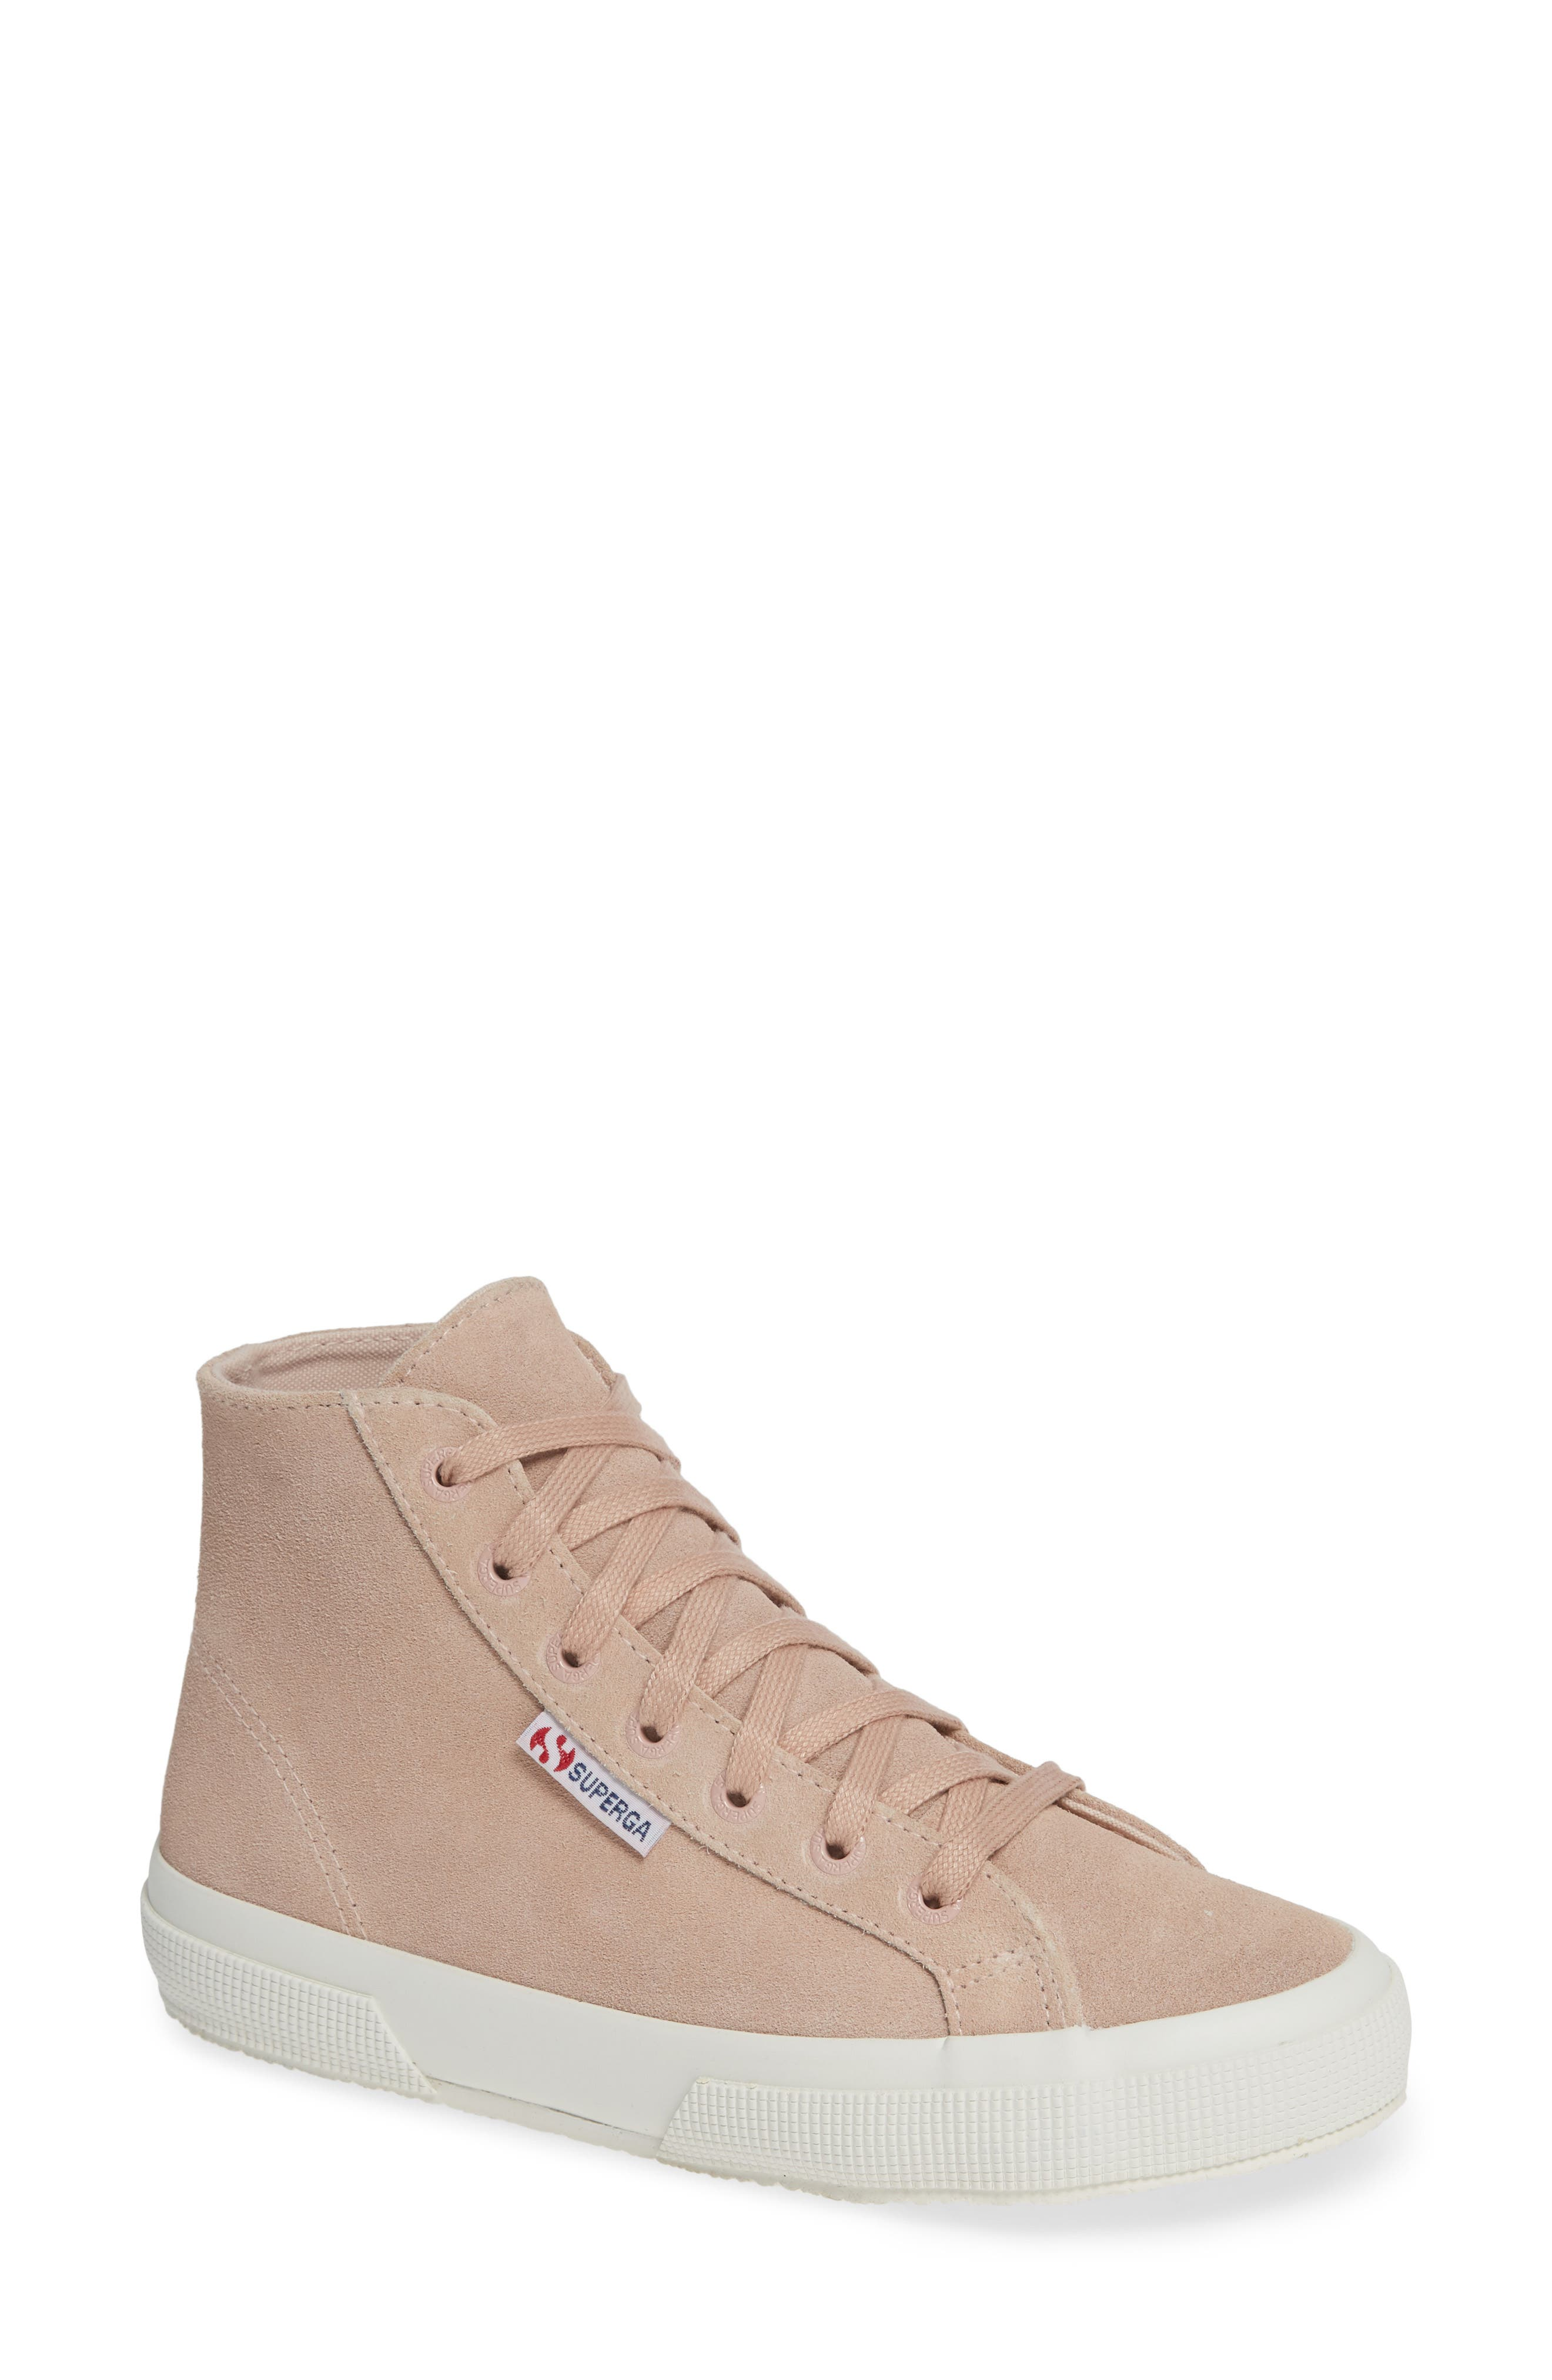 2795 High Top Sneaker,                         Main,                         color, ROSE SUEDE